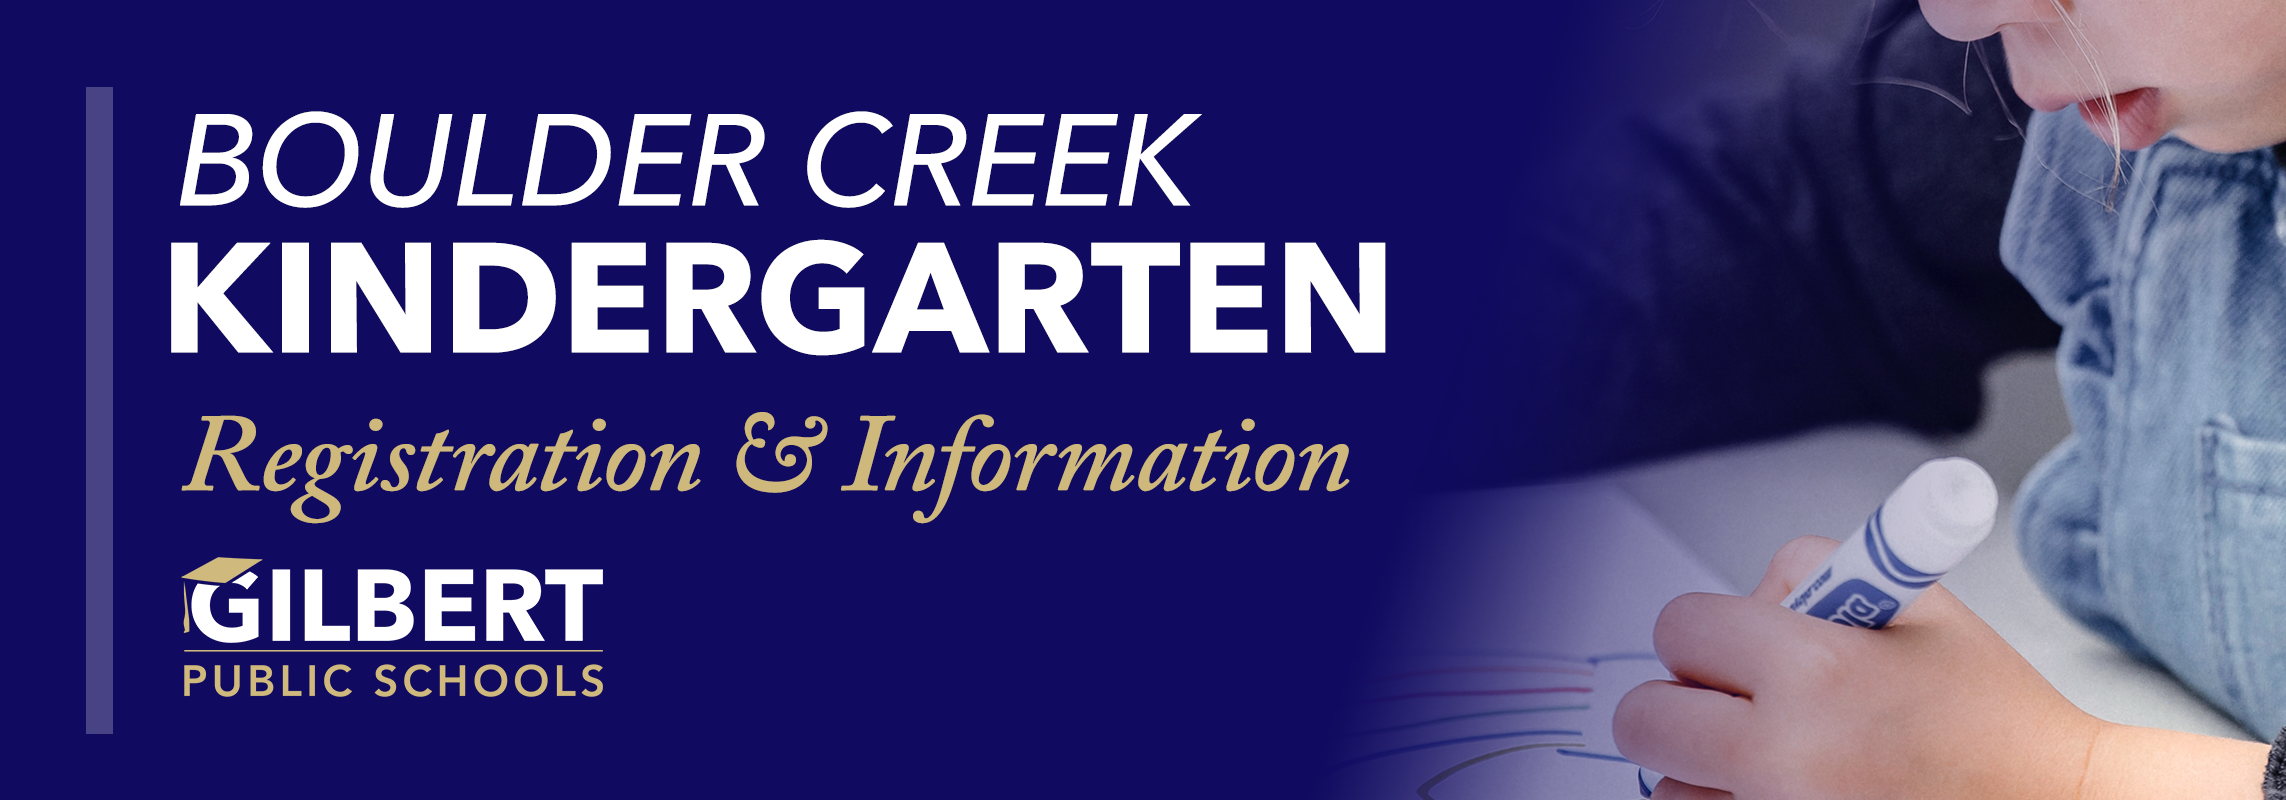 Boulder Creek Kindergarten Registration